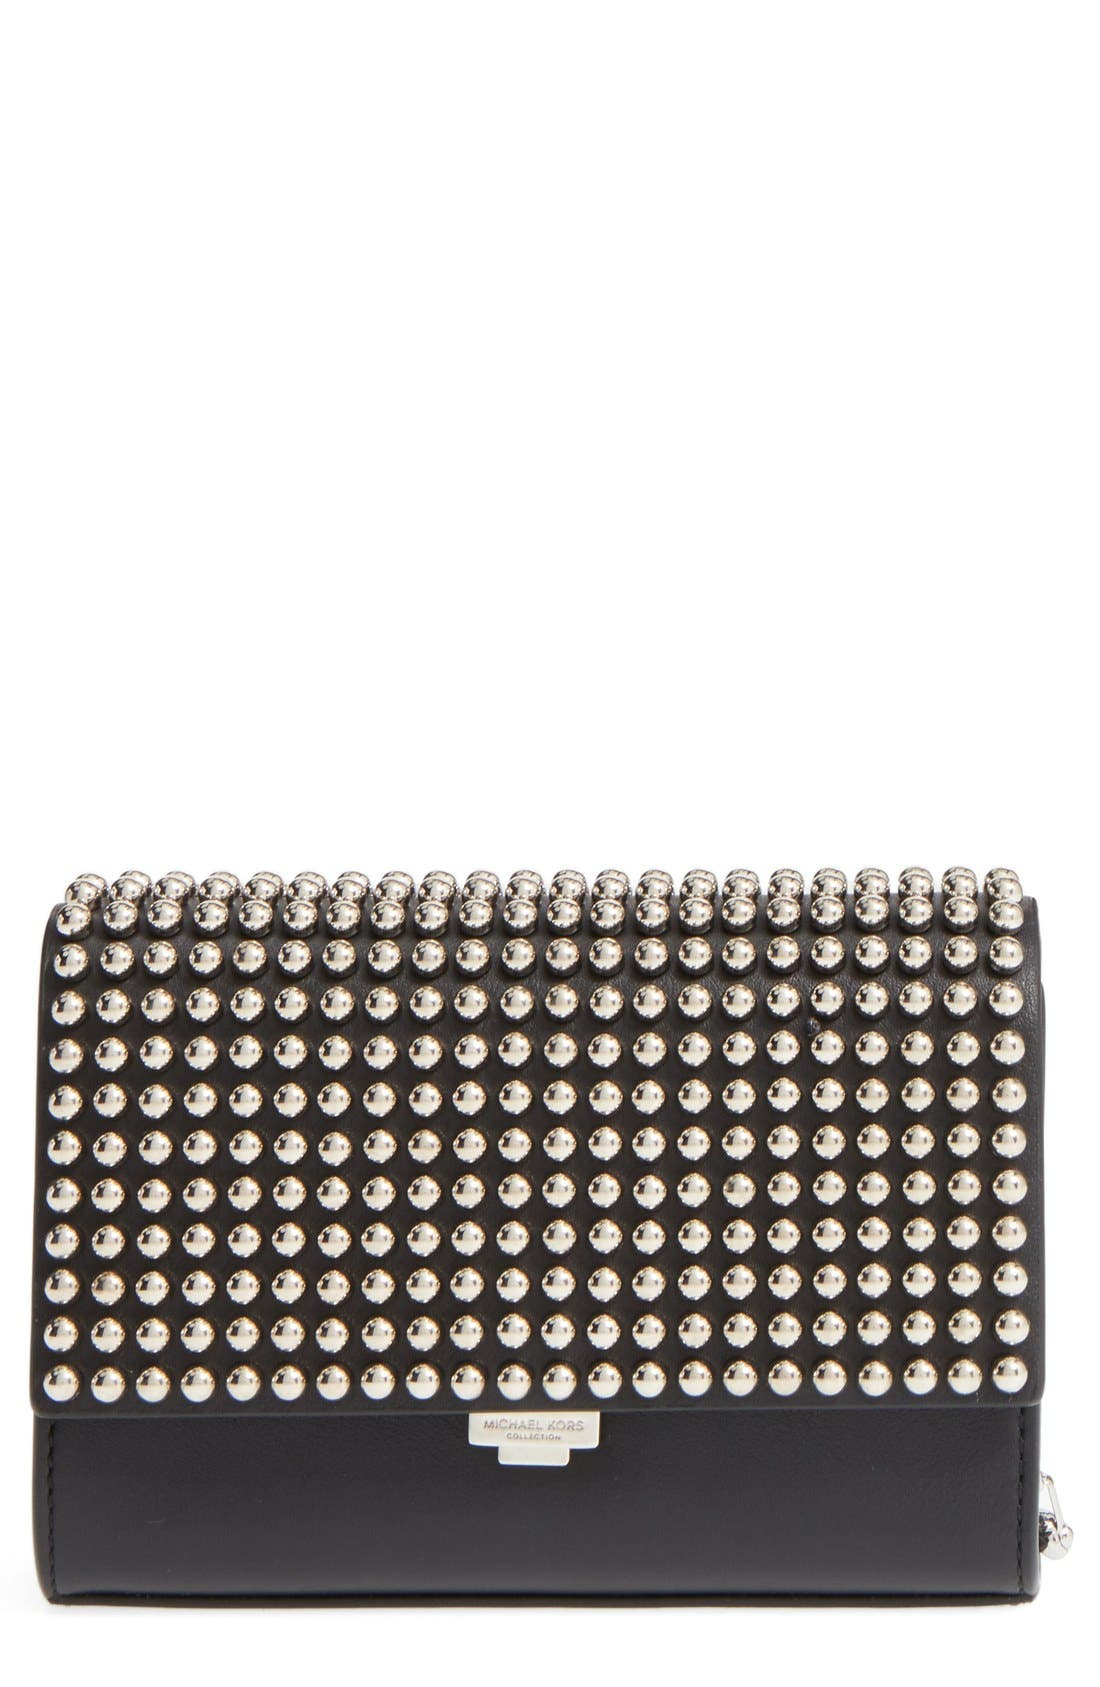 Alternate Image 1 Selected - Michael Kors 'Small Yasmeen' Studded Clutch